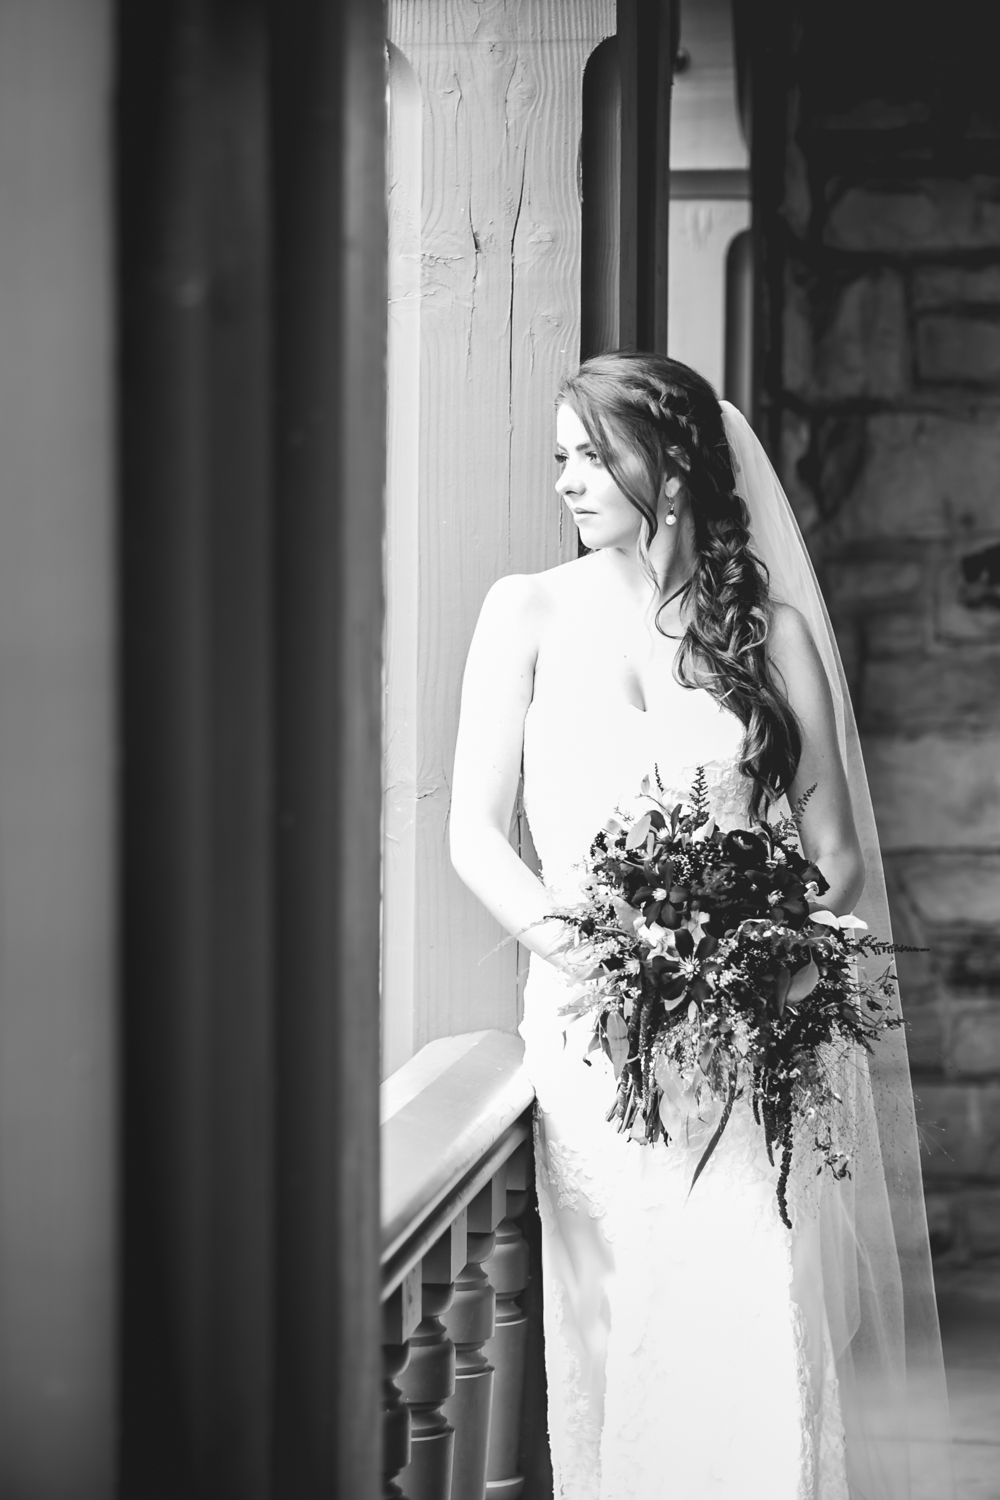 Bride at Highlands Ranch Mansion. Photographed by JMGant Photography.